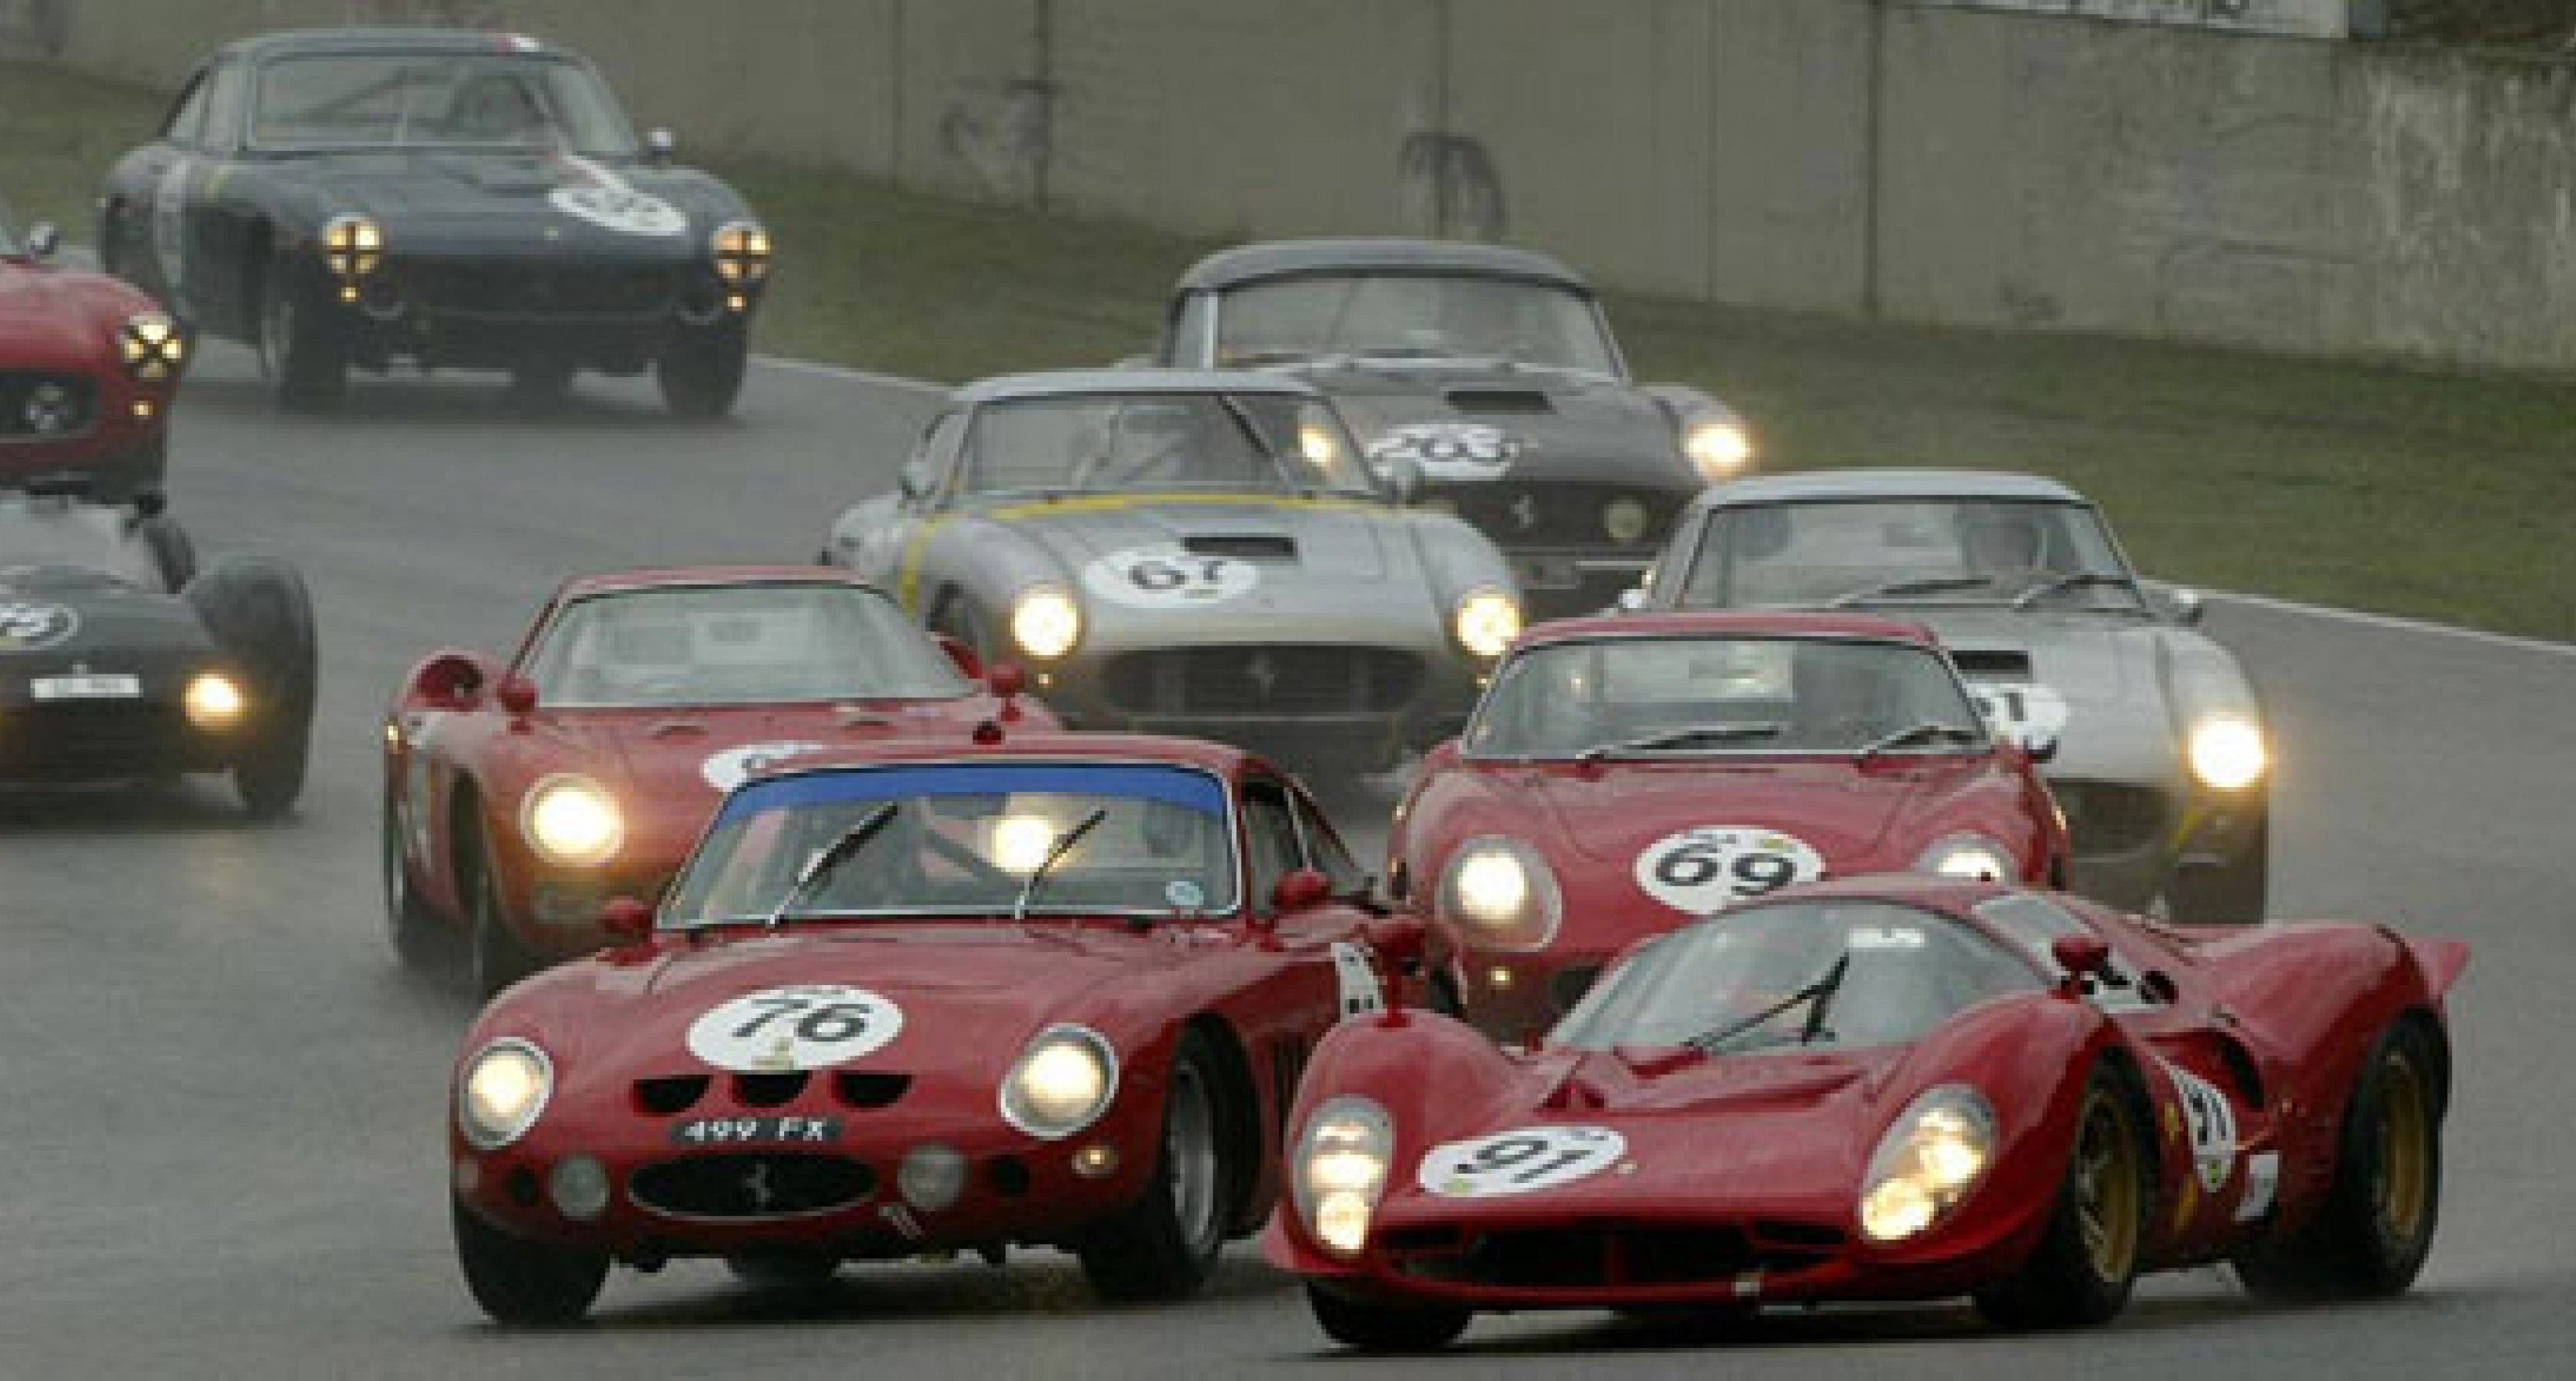 Fifty thousand turn up for Ferrari and Maserati party at Mugello 2003